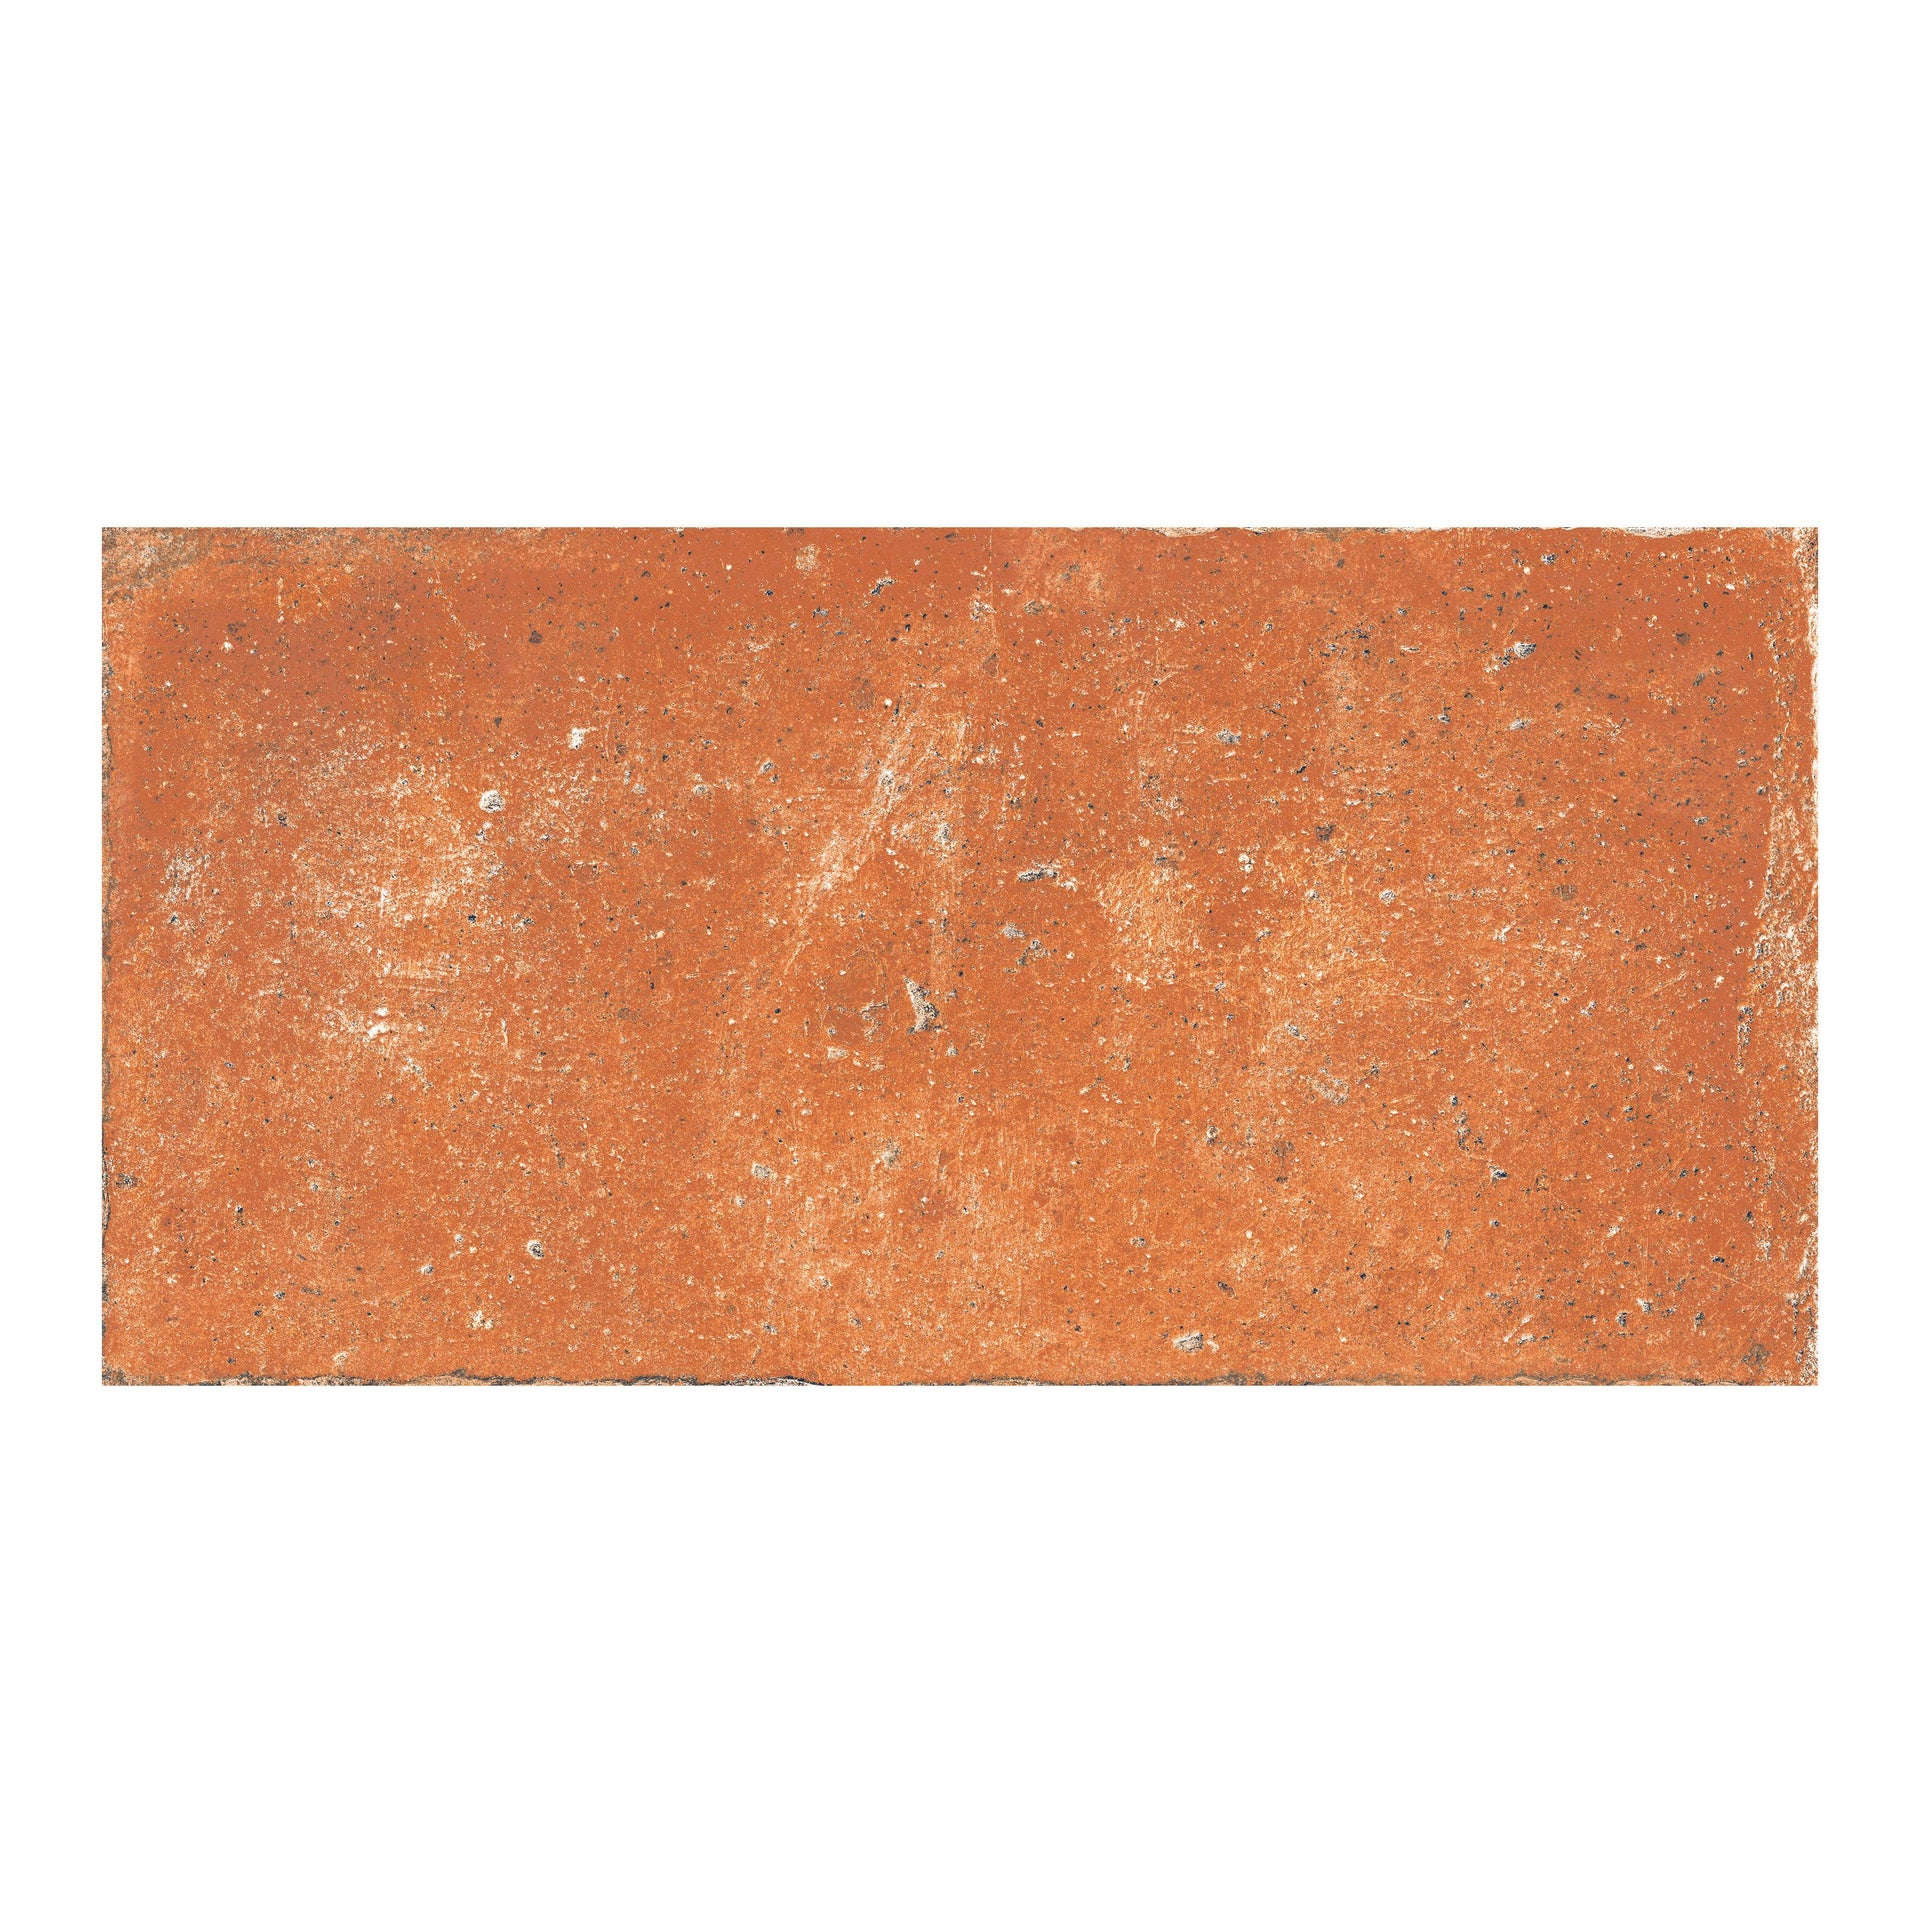 Piastrella Brunello 20.3 x 40.6 cm sp. 9 mm PEI 5/5 terracotta - 2